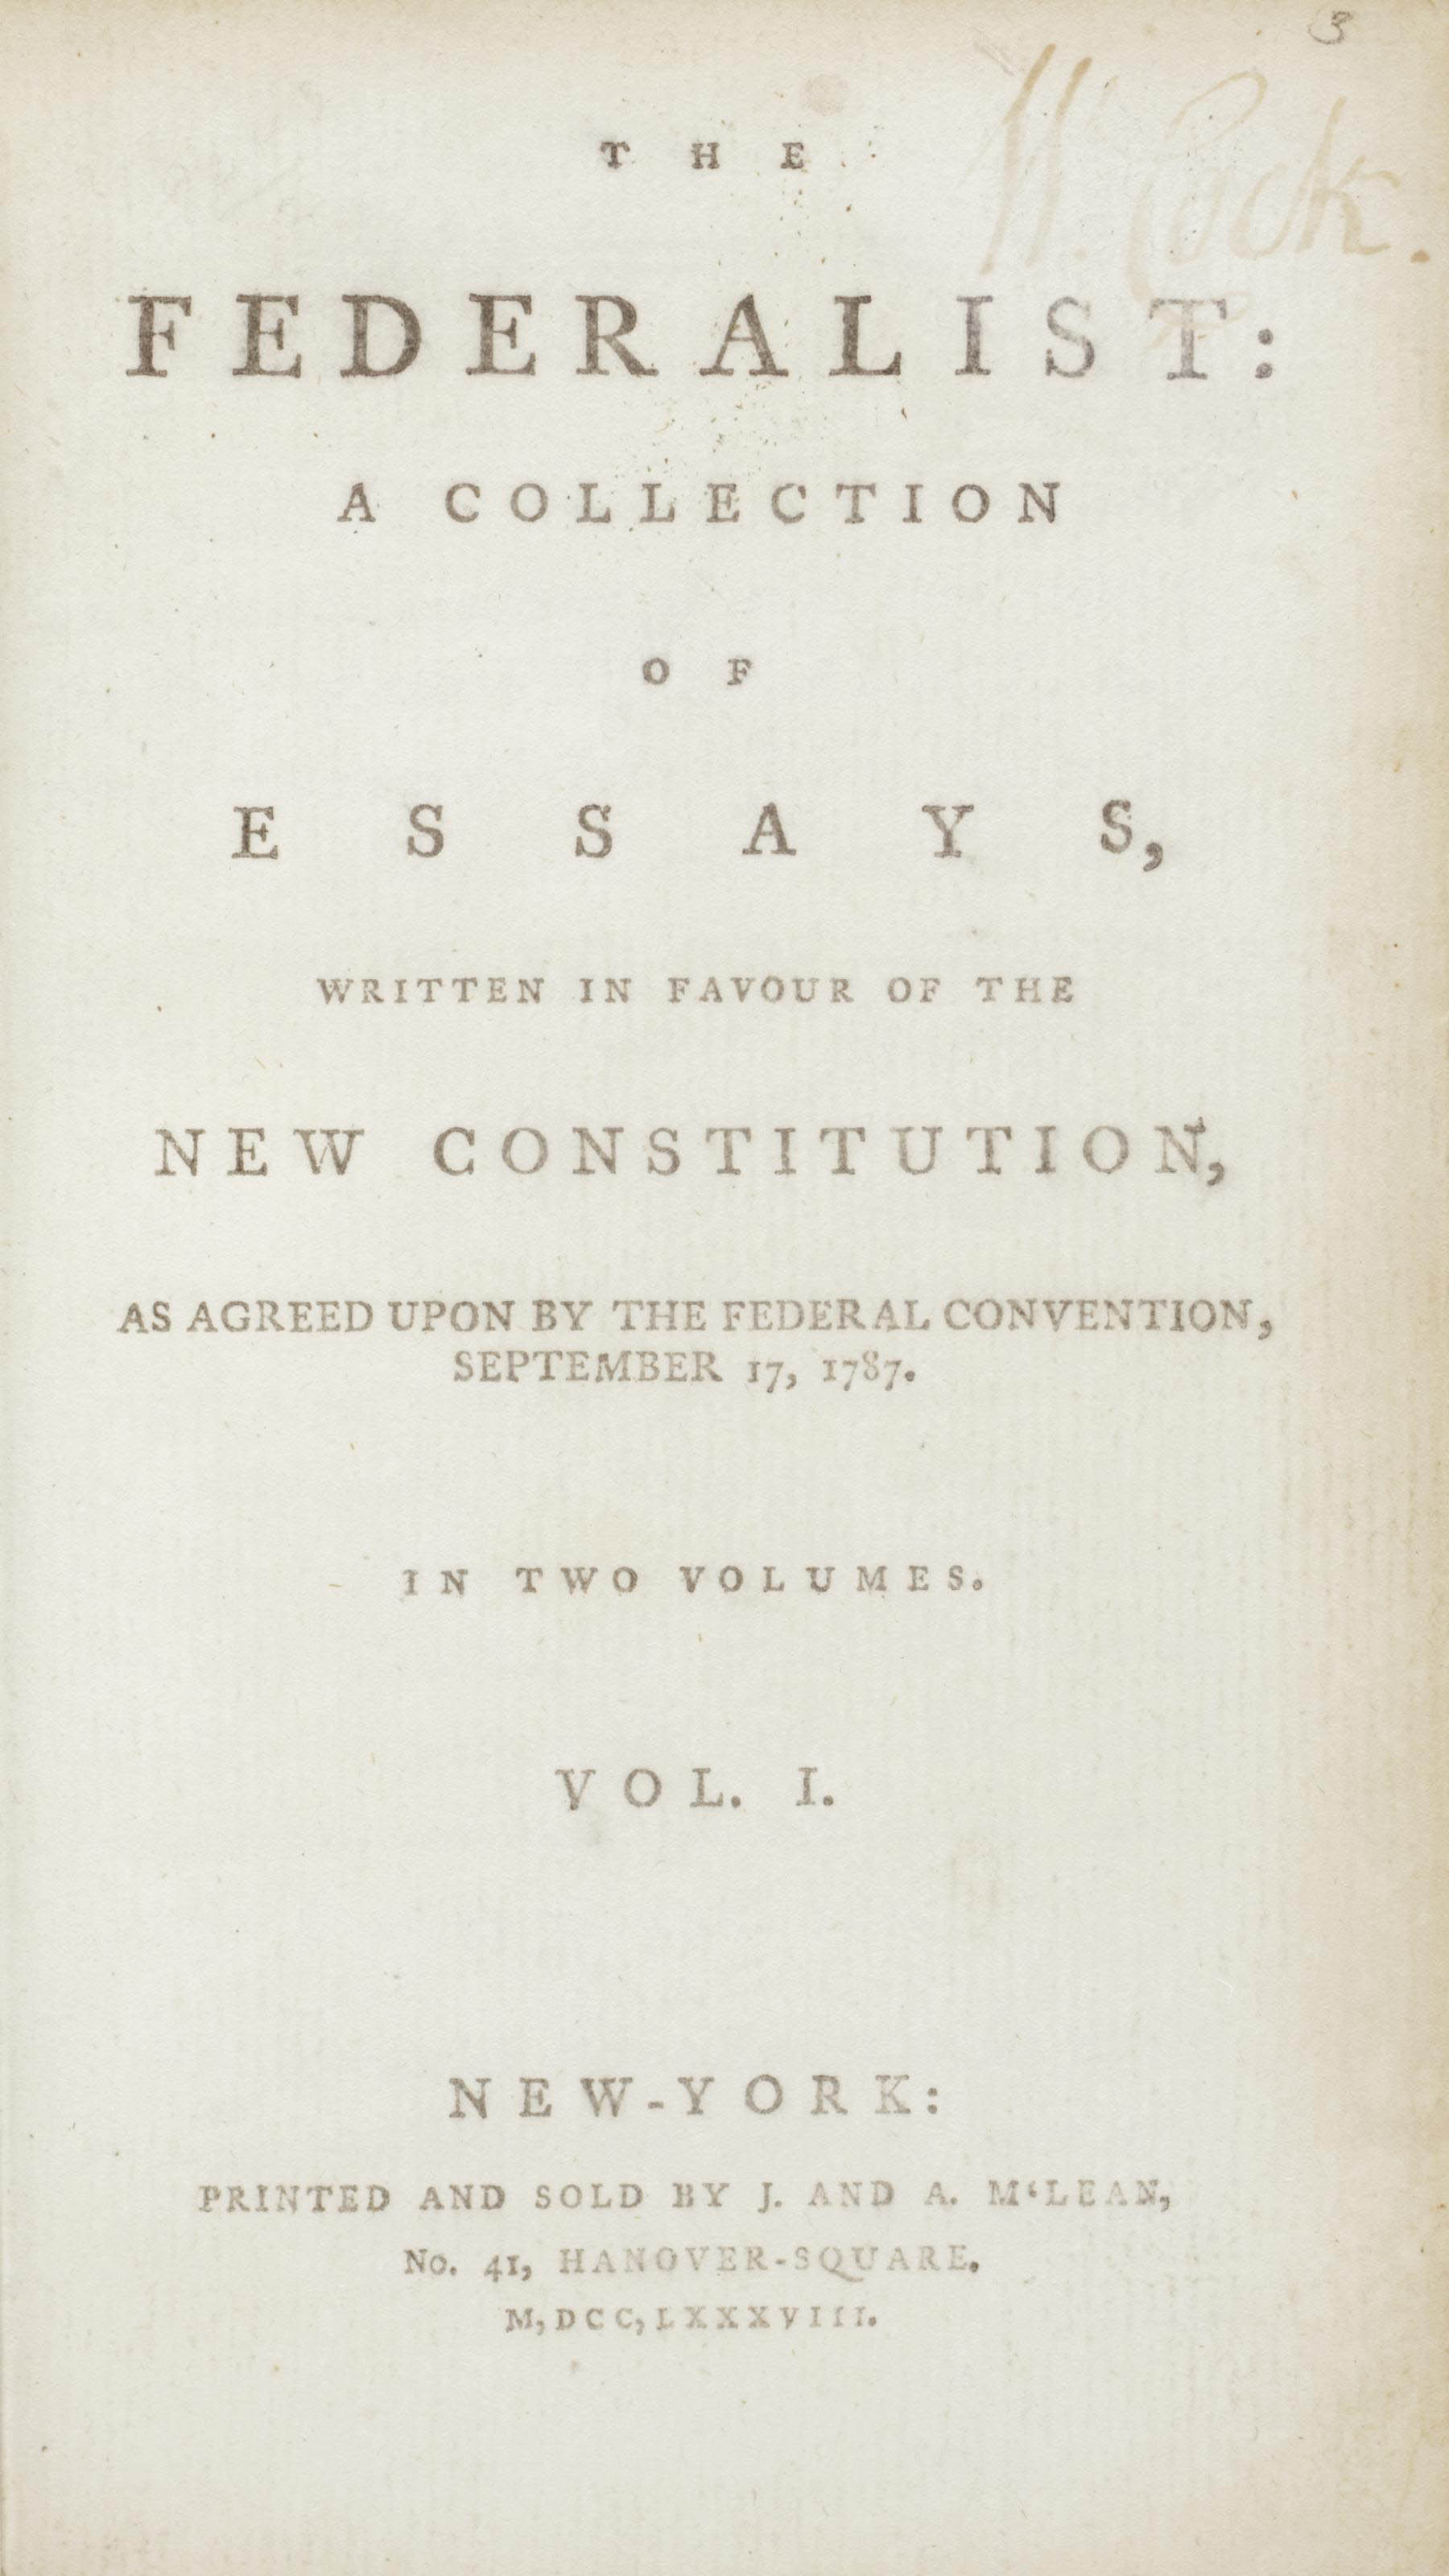 016 Essay Example Alexander Hamilton Essays 2012 Nyr 02622 0043 000the Federalist Papers  James Madison And John Jay Frightening 51 78 Did WroteFull